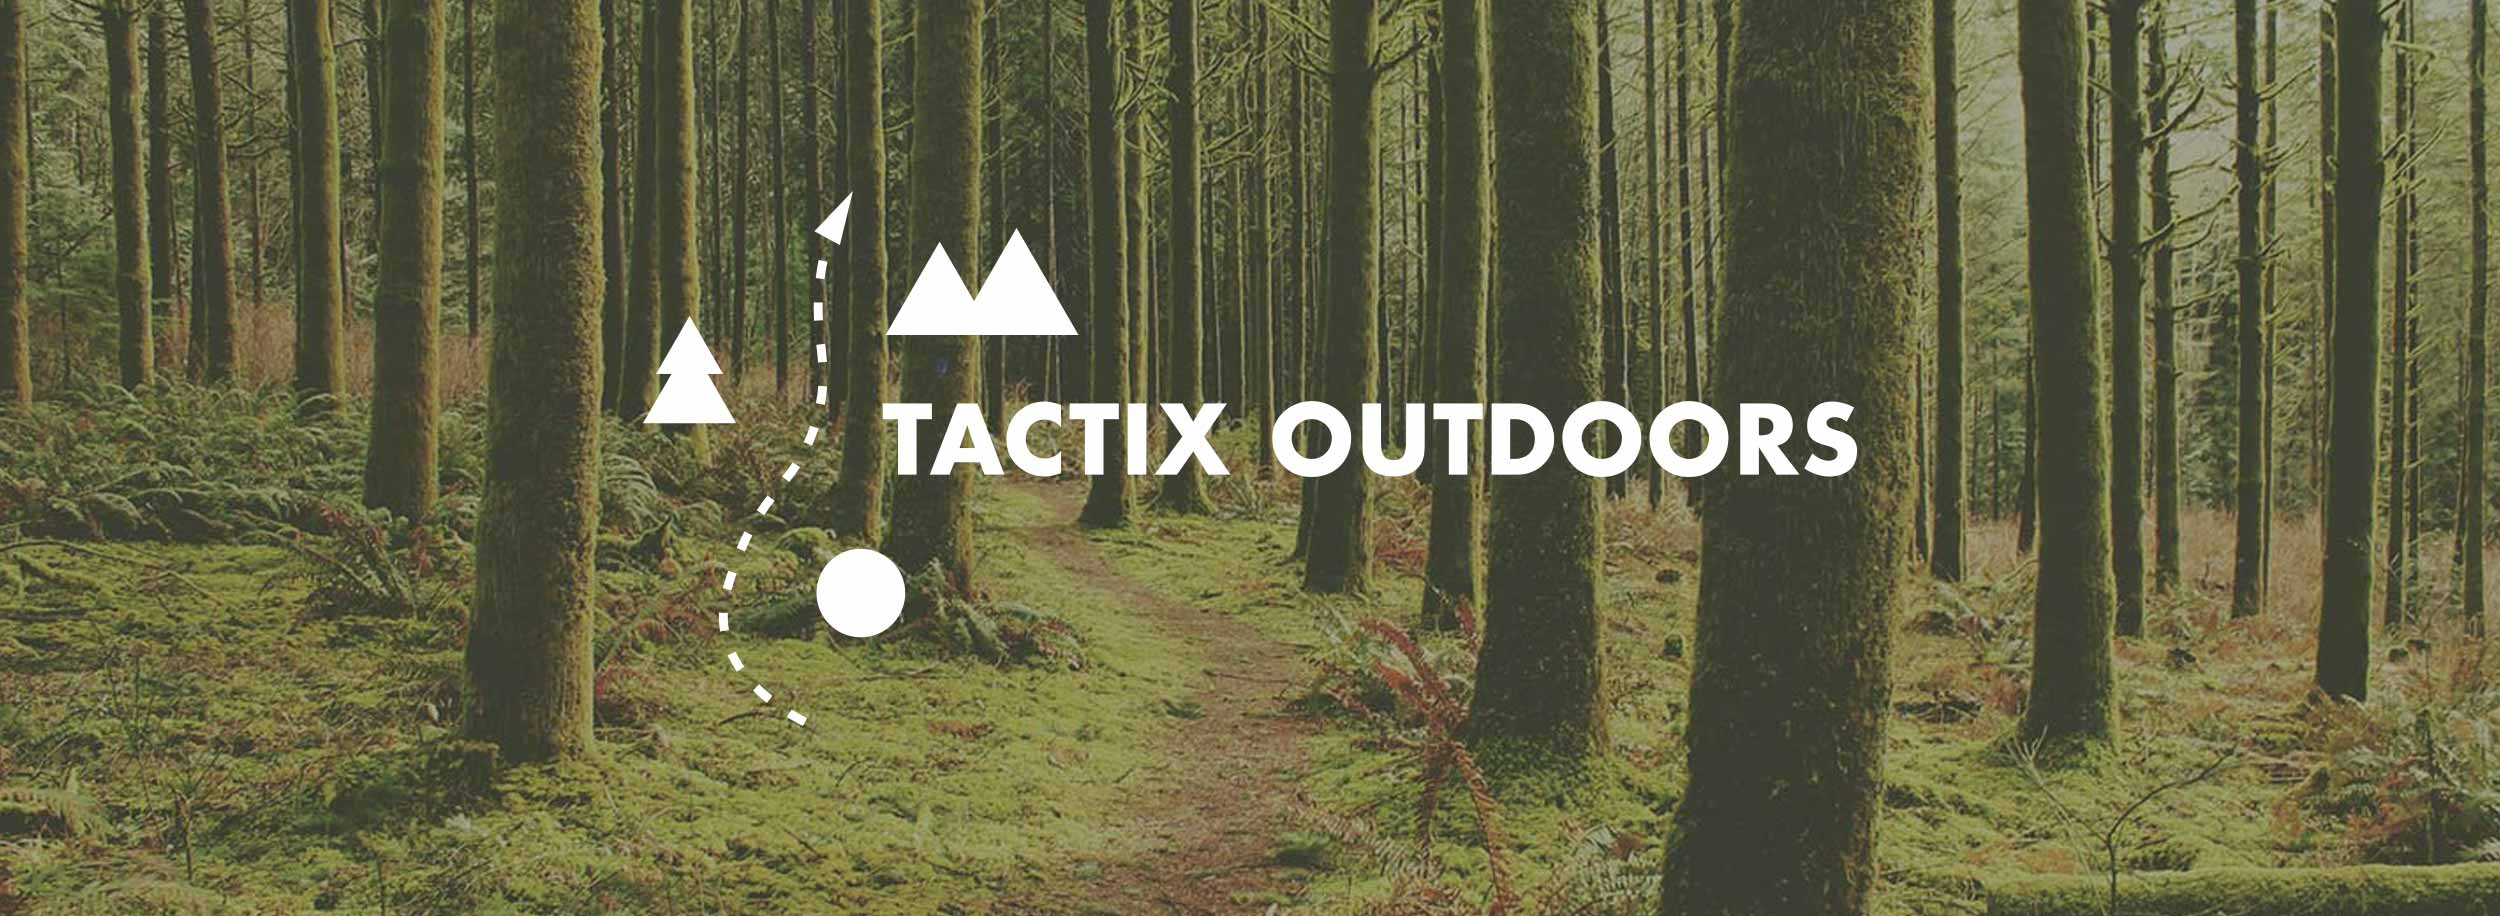 Geometric minimalist logo perfectly communicates the main focus of Tactix Outdoors brand: it's all about tactics and survival. © LET'S PANDA